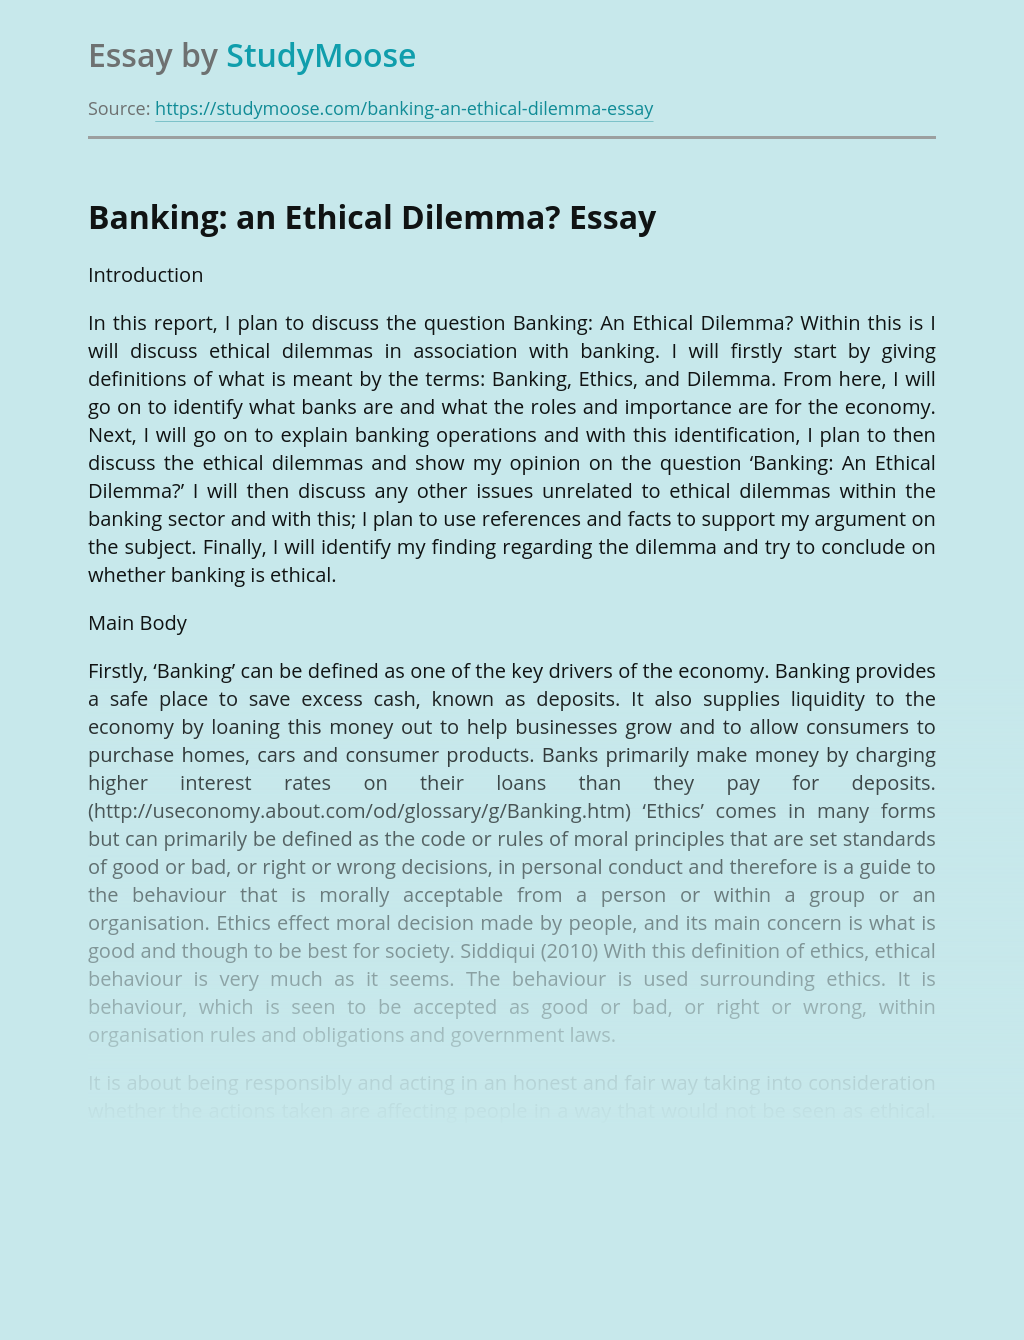 Banking: an Ethical Dilemma?